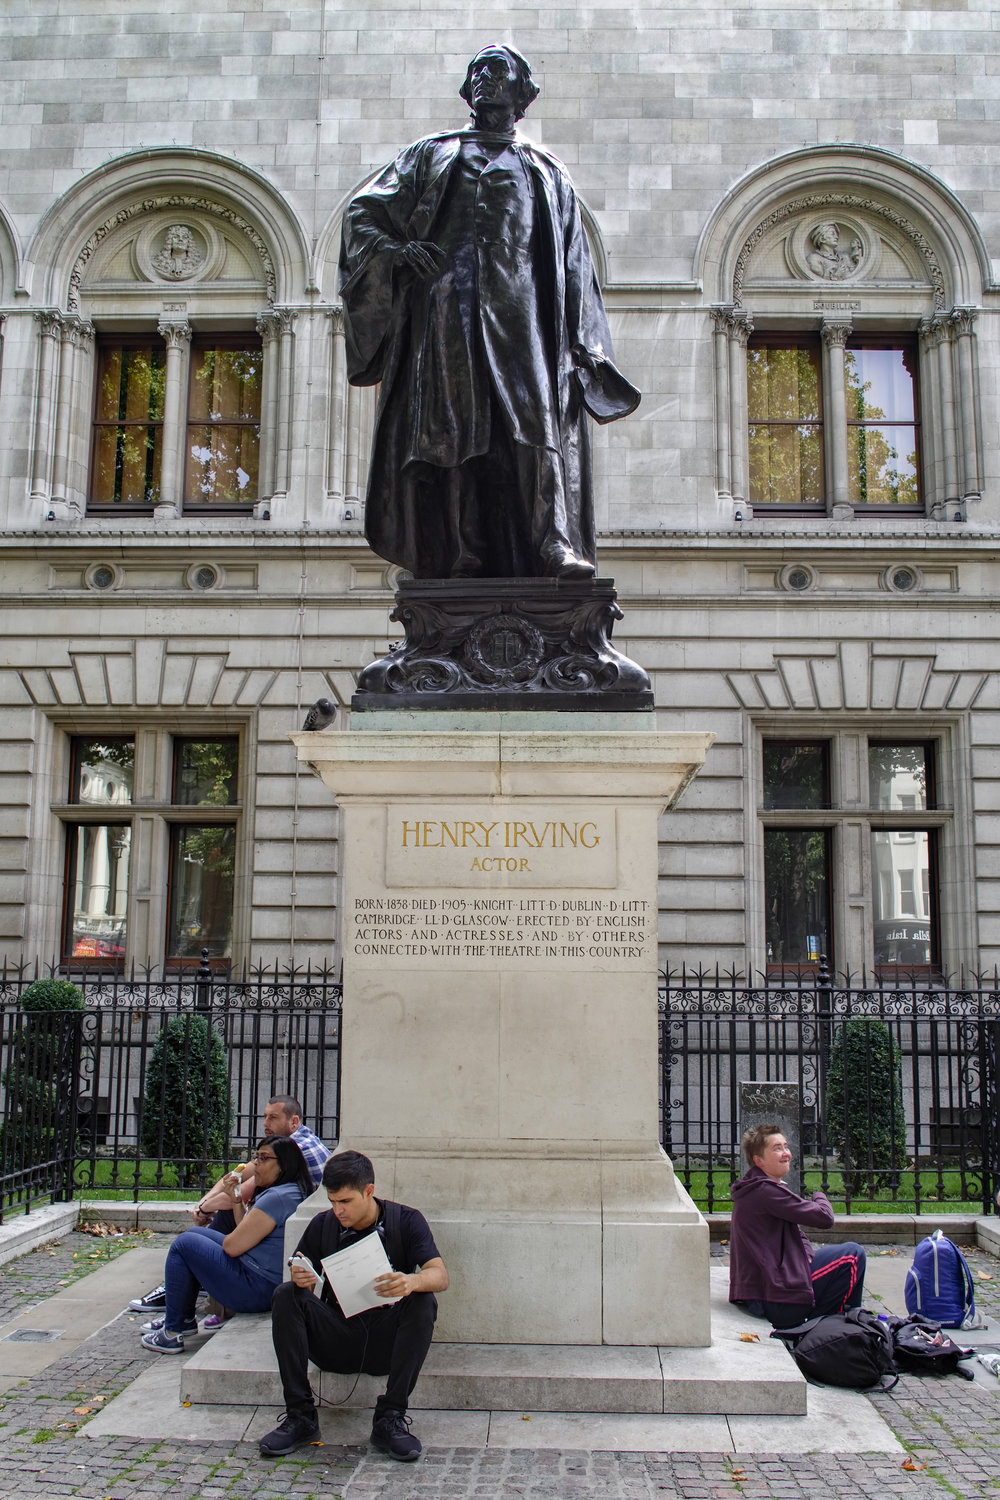 All the world's a stage — Sir Henry Irving and the Leica TL2 with 23mm Summicron